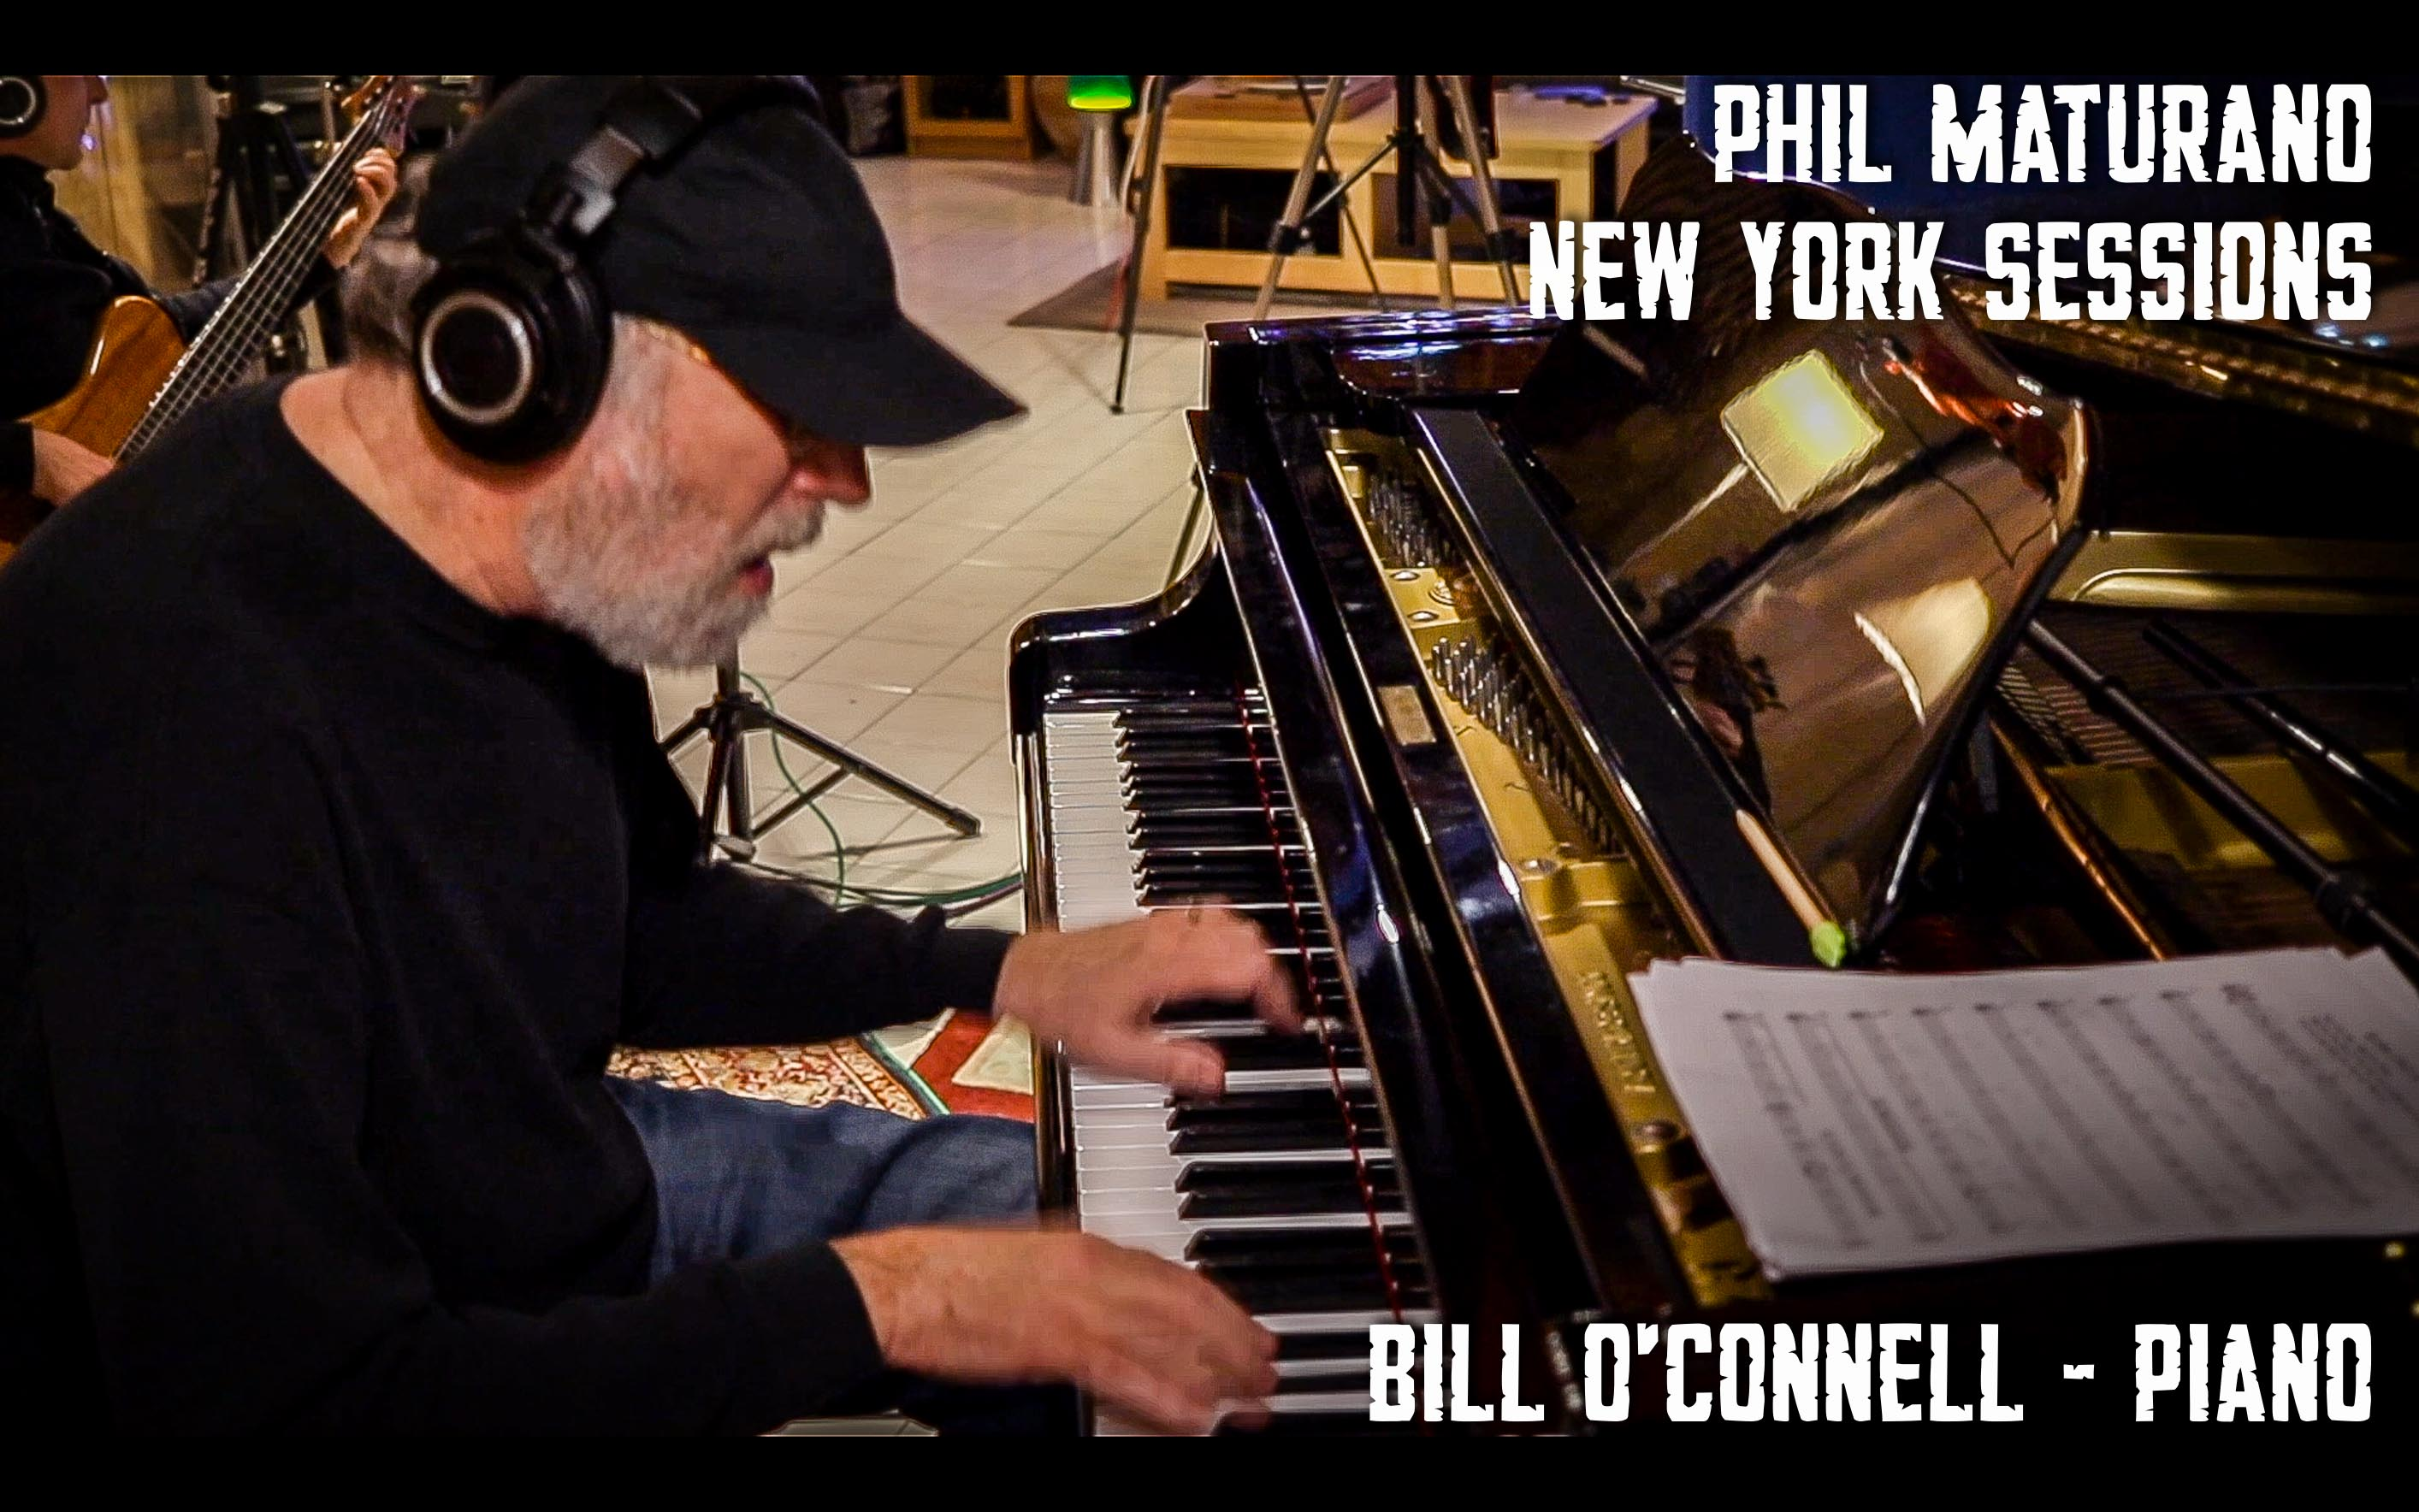 Bill O'Connell in Studio for Phil Maturano - New York Sessions